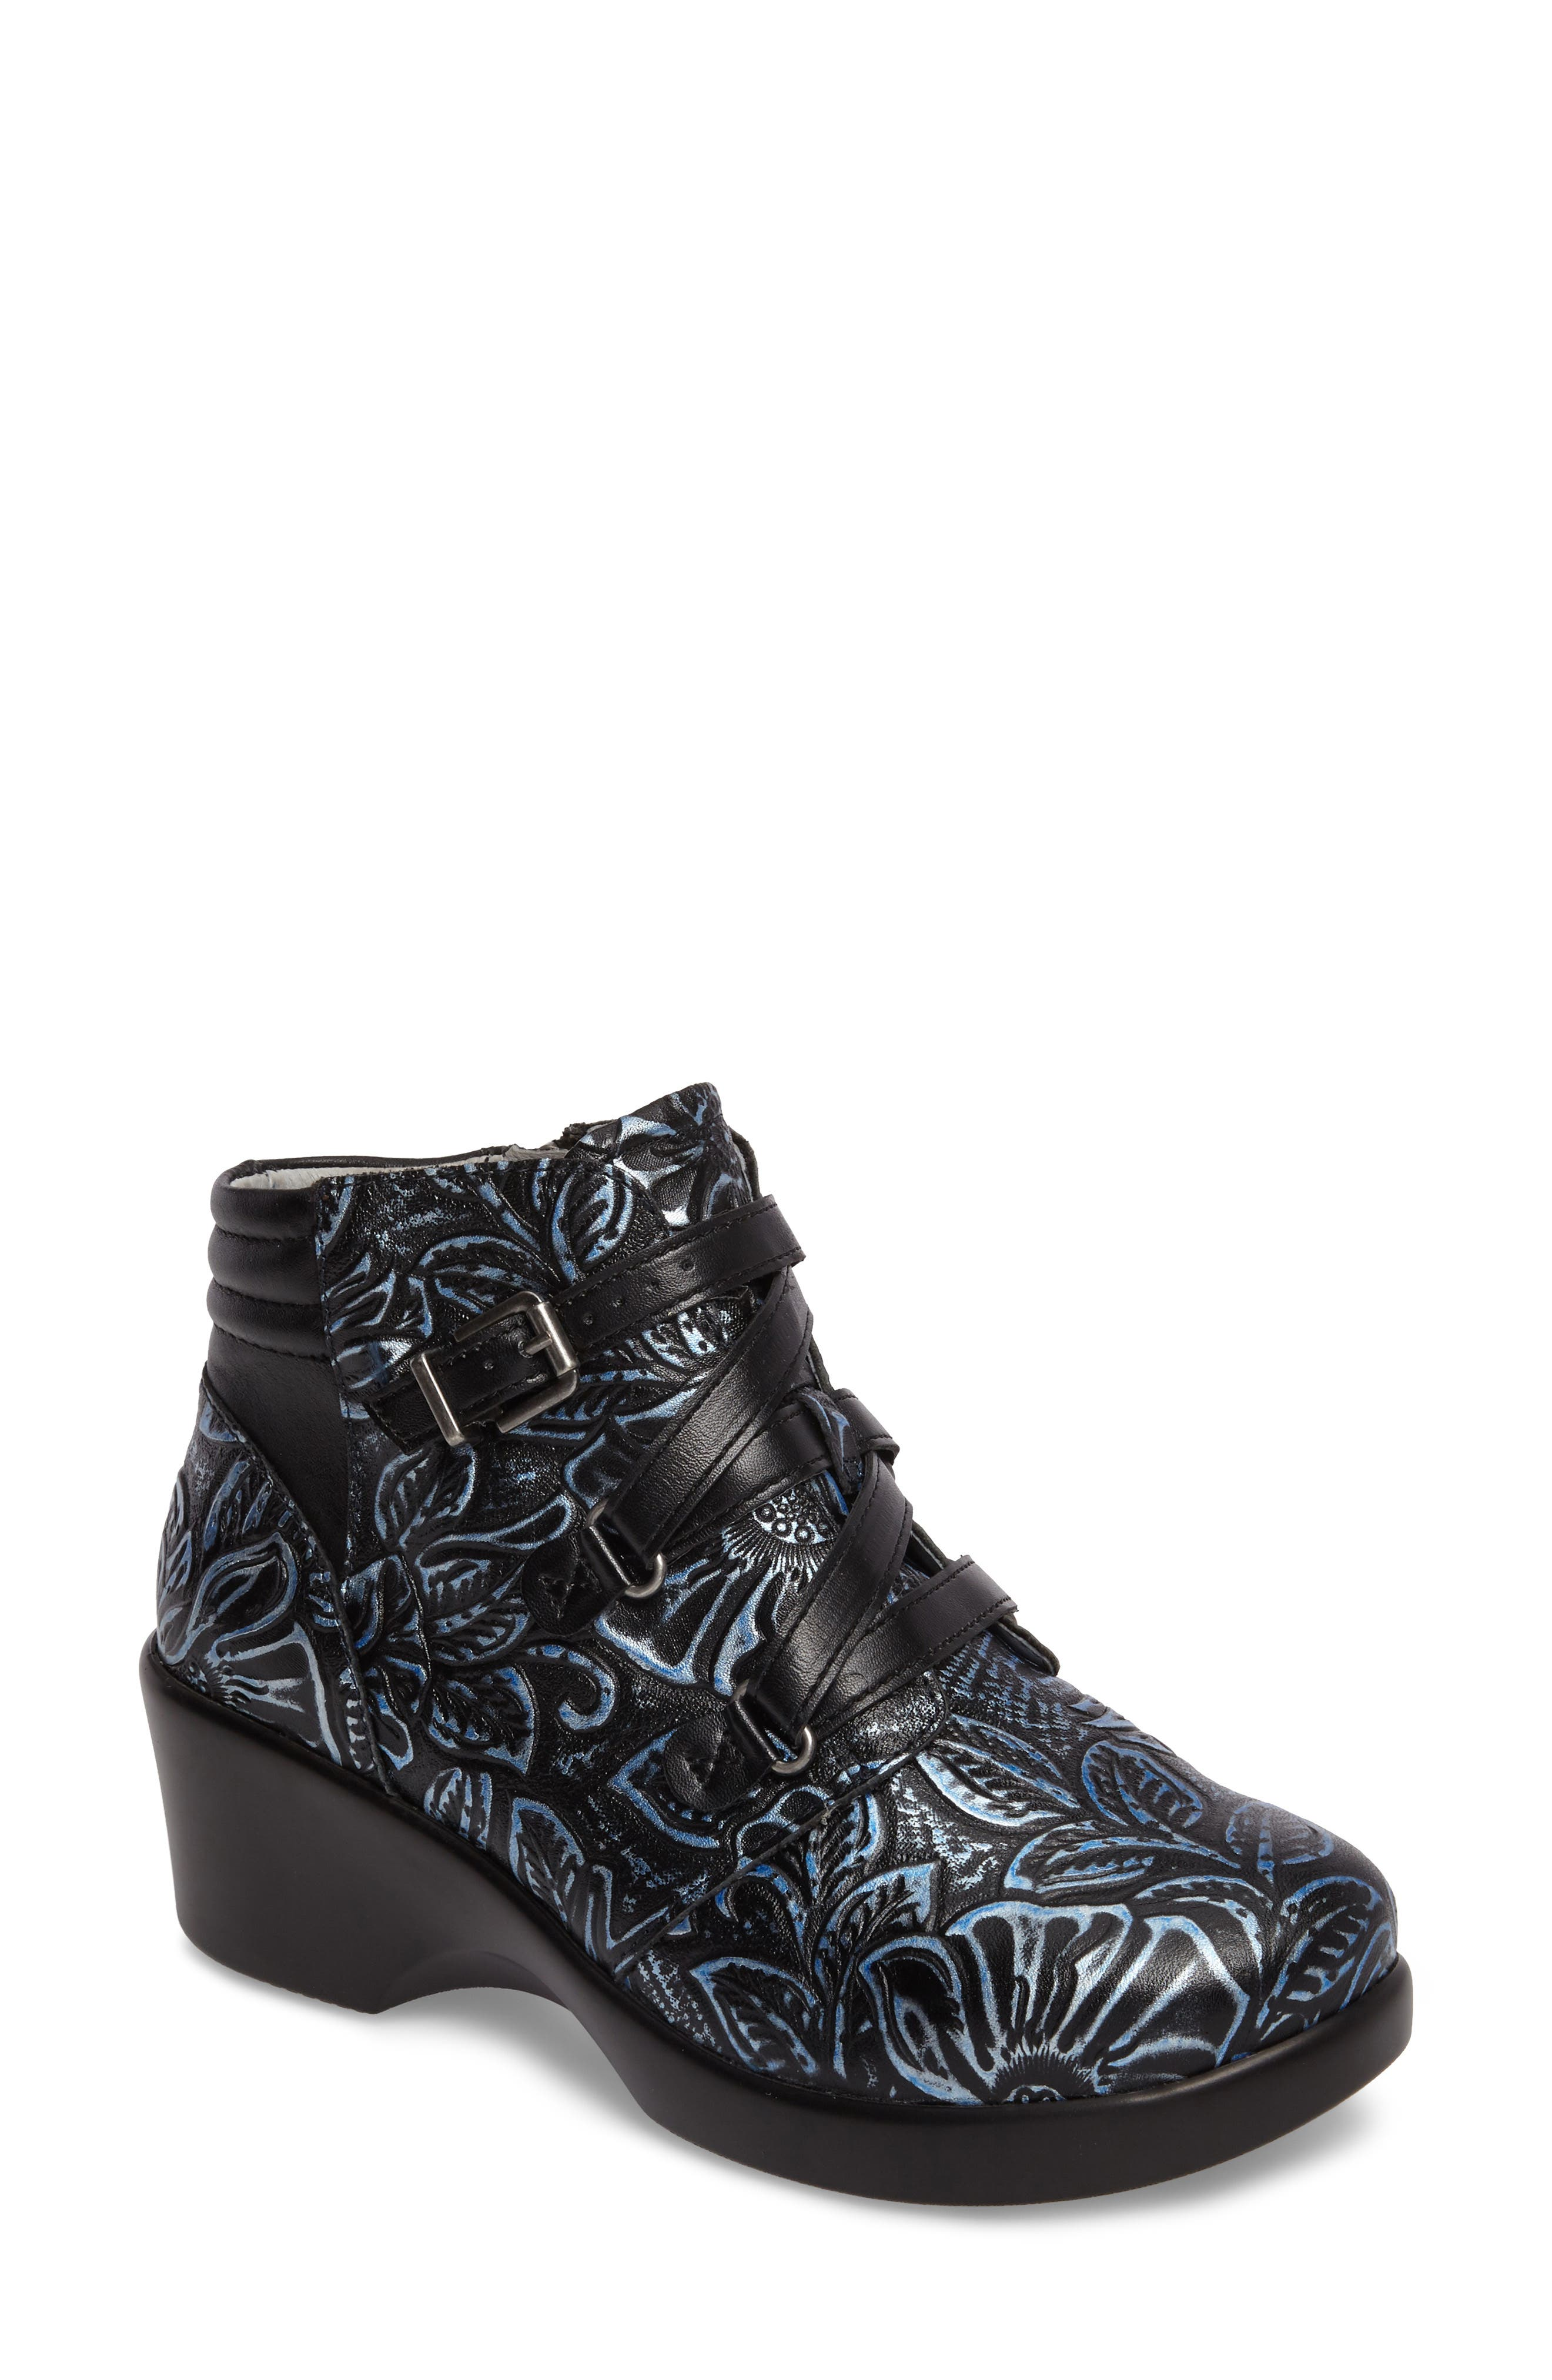 Alternate Image 1 Selected - Alegria Indi Demi Wedge Bootie (Women)